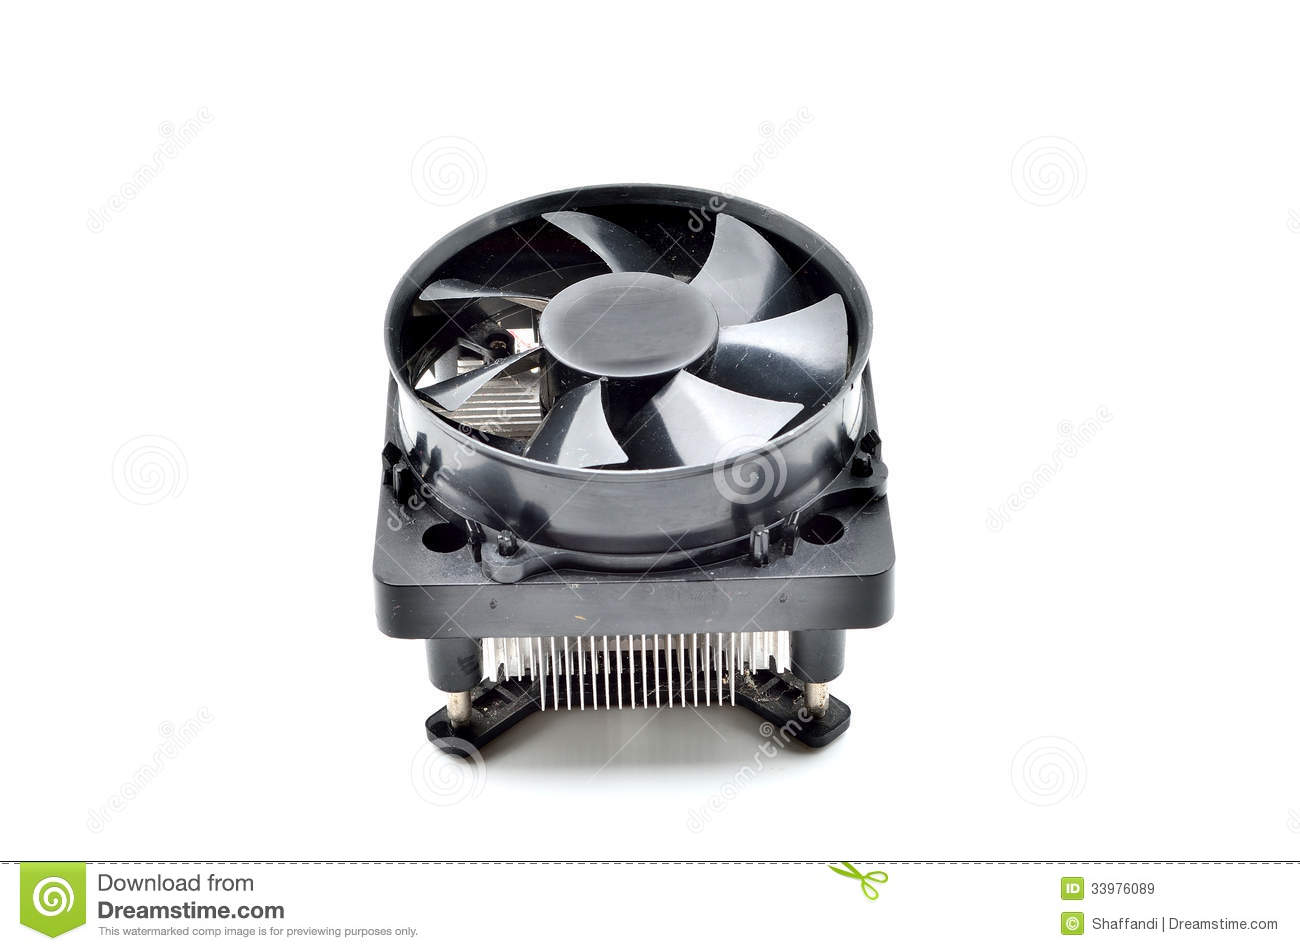 how to clean heatsink on stock cpu cooler